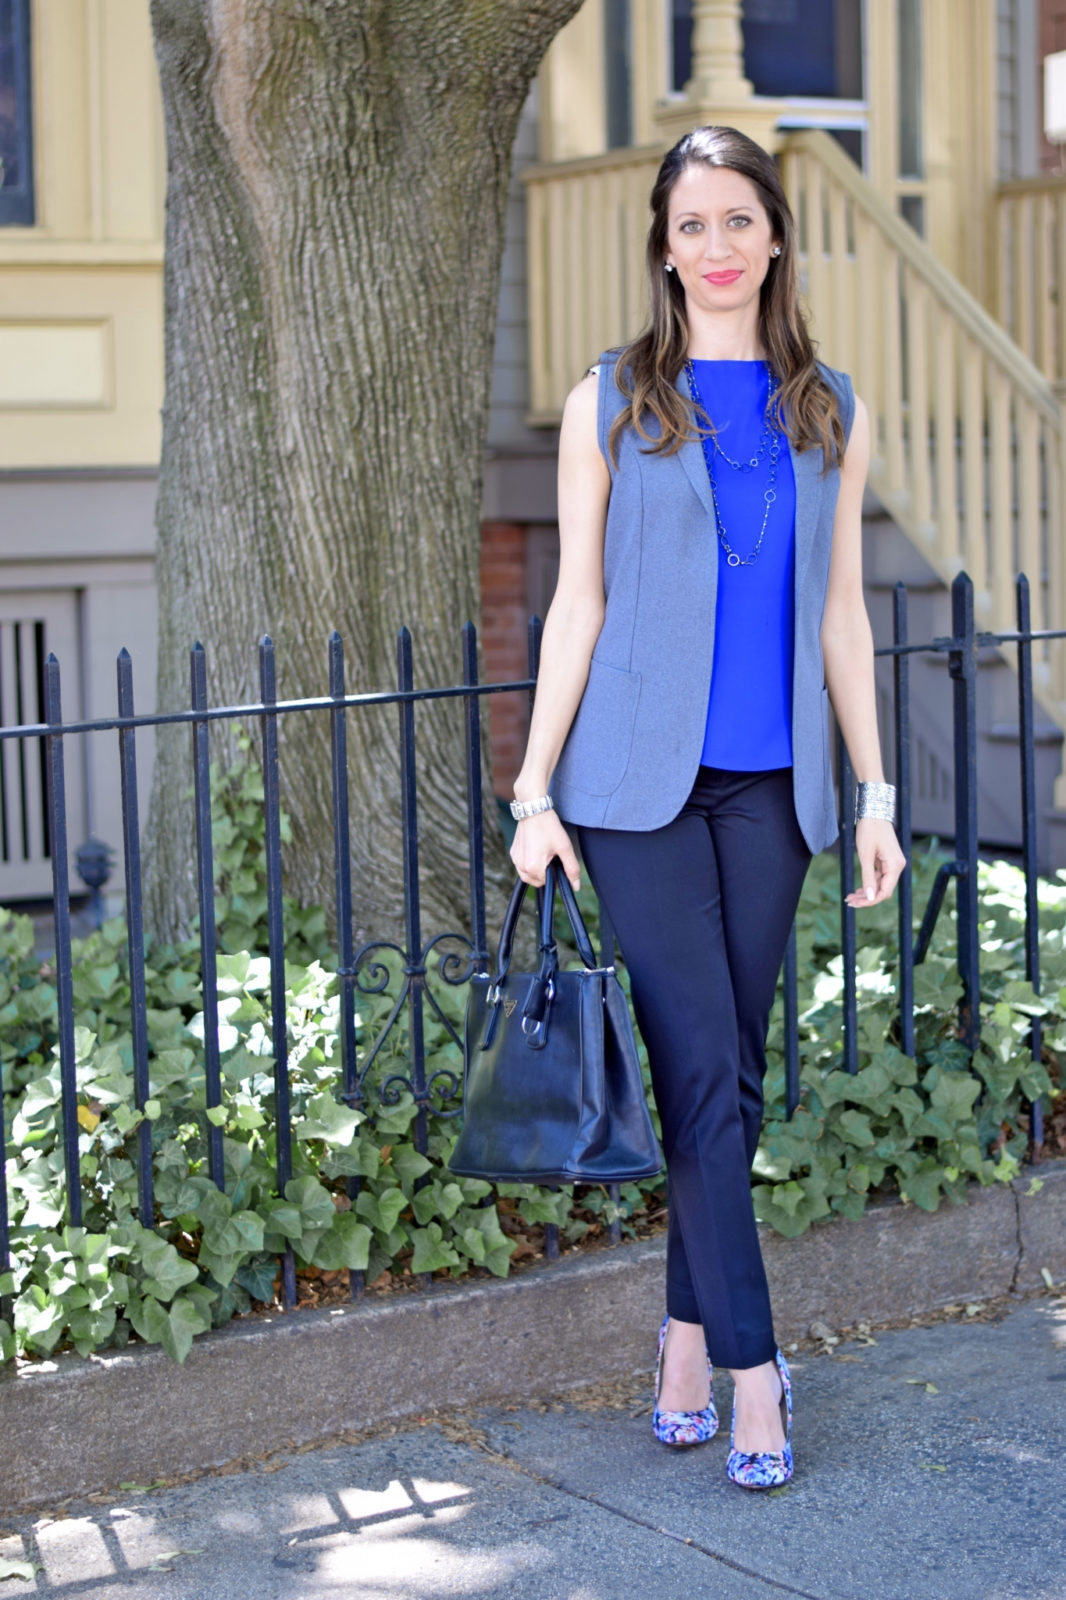 interview outfit ideas fashion angel warrior